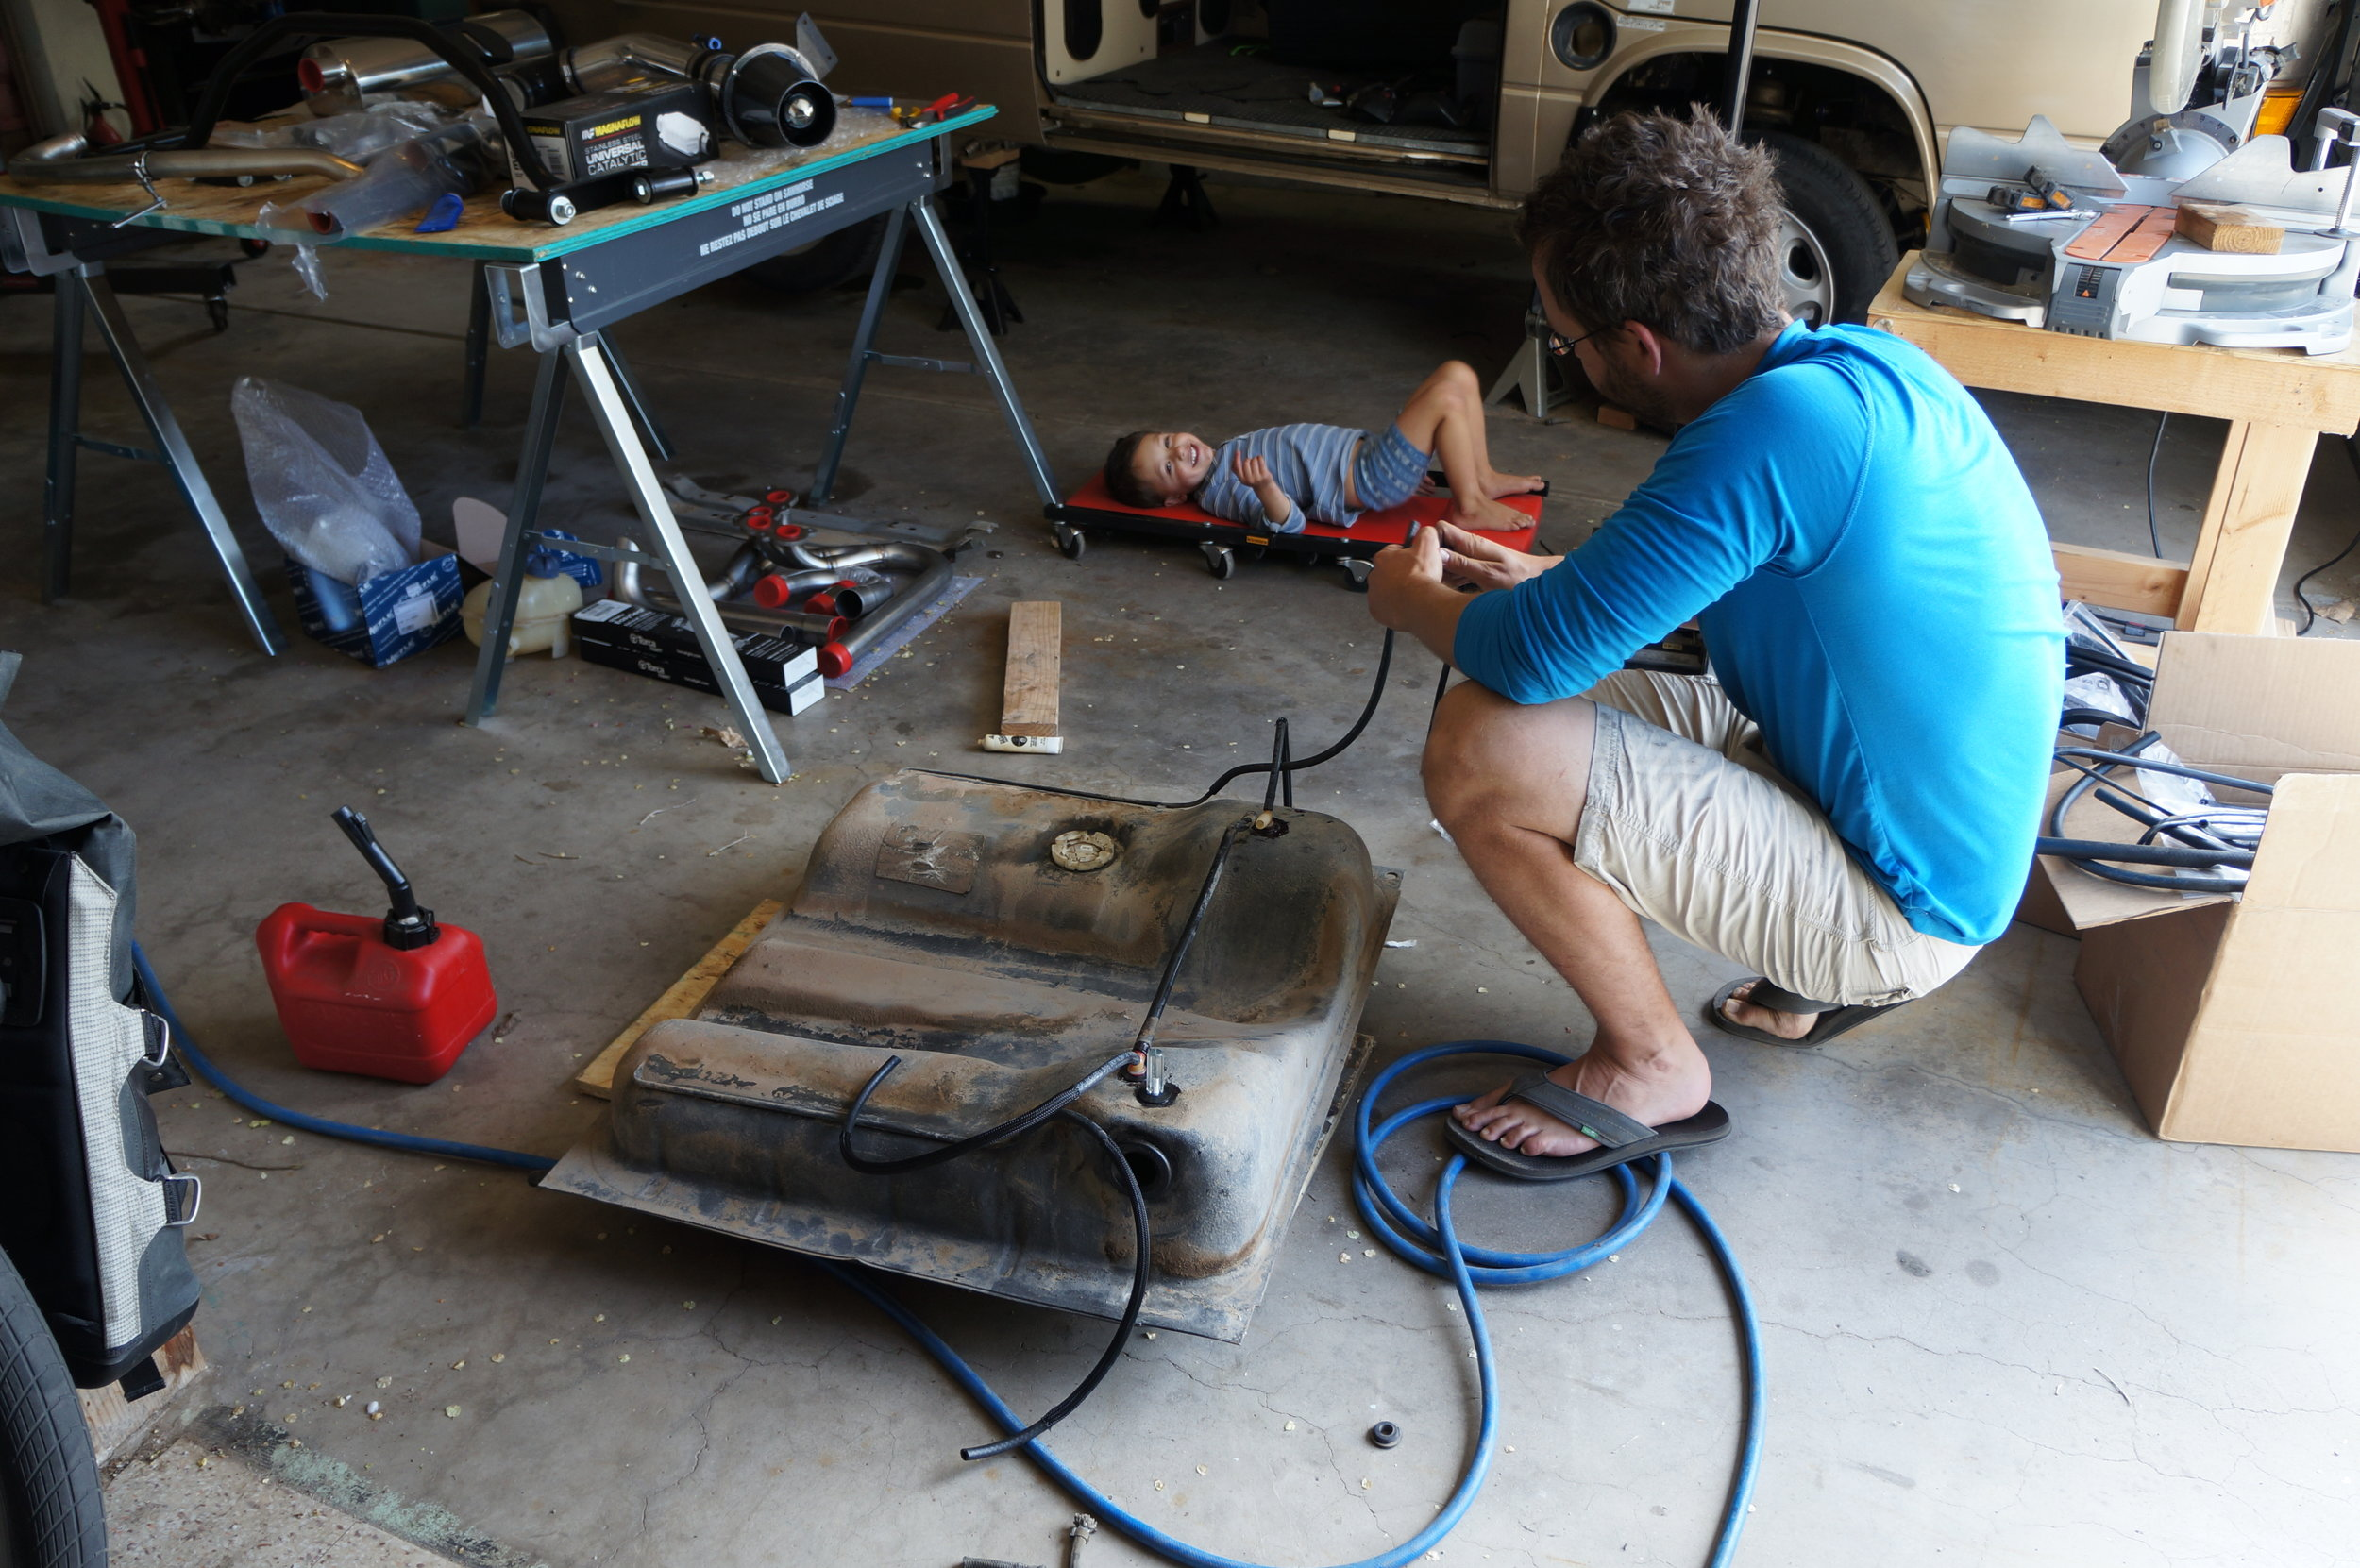 April 2017 - Bennett supervising Chip's effort at putting the gas tank back together. Nothing like filling ALL the way up and not dripping gas for the next 20 miles.